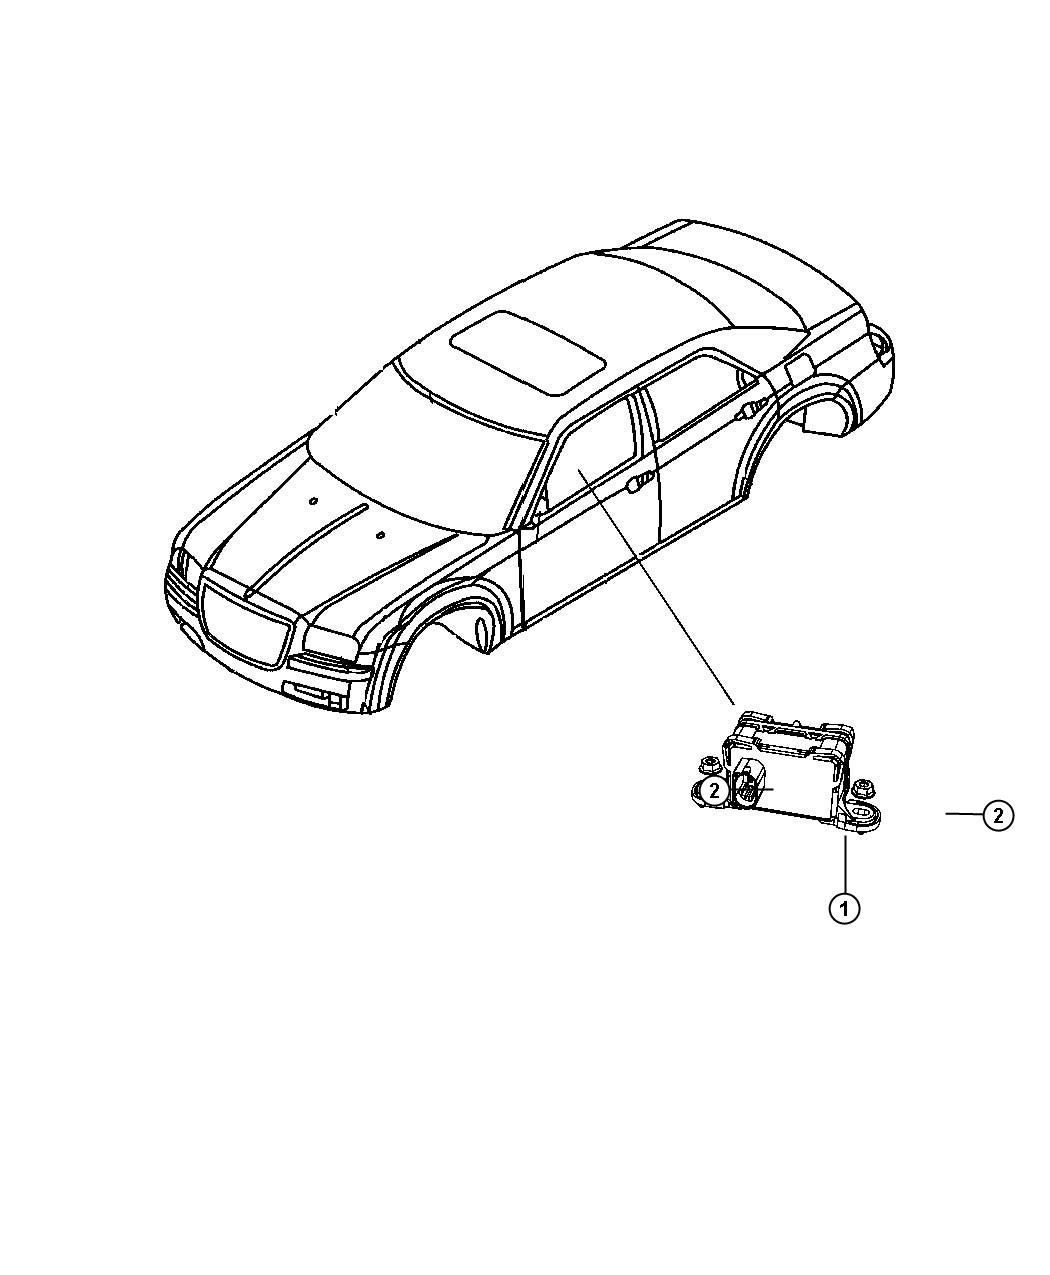 Dodge Charger Sensor Dynamics Used For Lateral